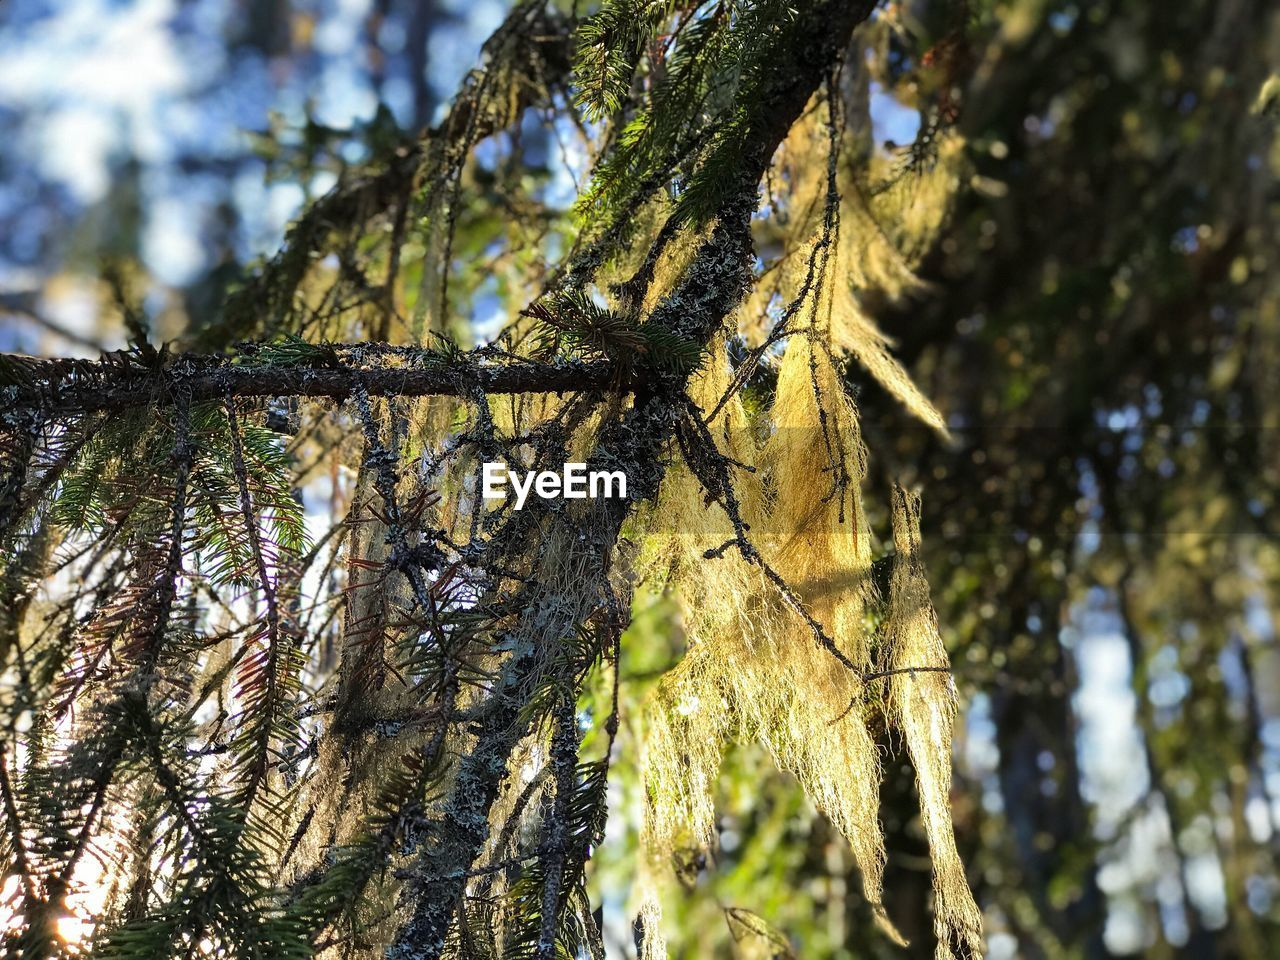 tree, tree trunk, growth, nature, branch, low angle view, day, focus on foreground, no people, beauty in nature, green color, outdoors, sunlight, close-up, forest, catkin